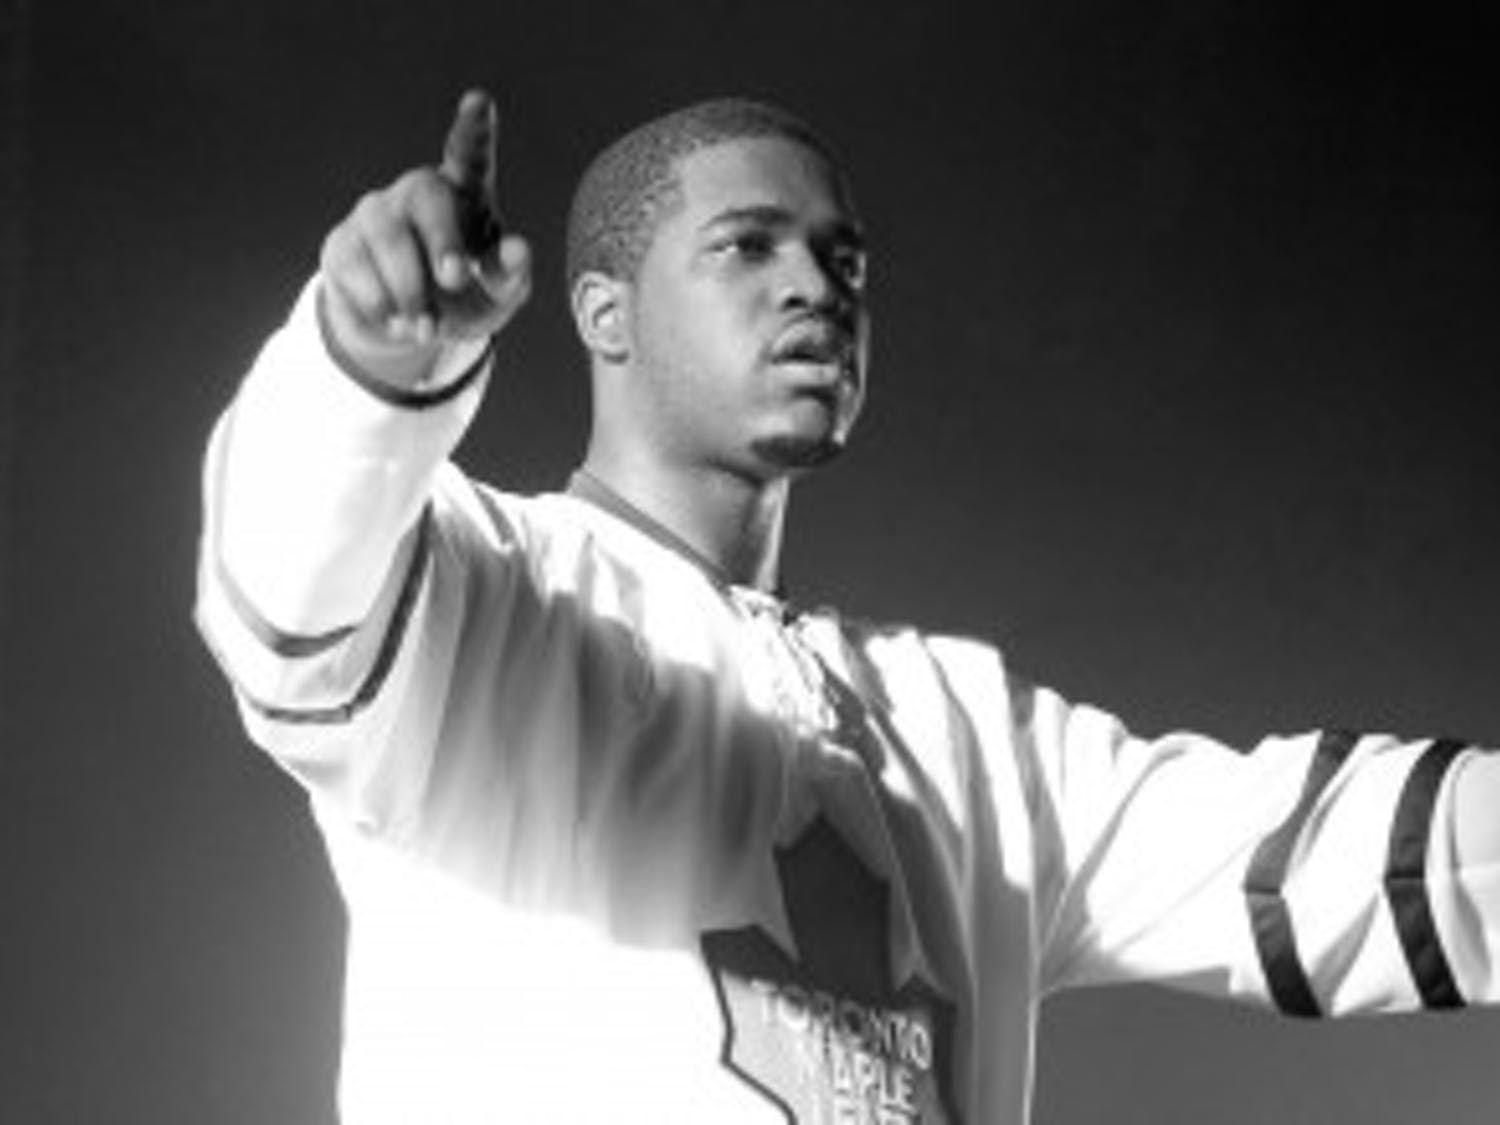 A$ap Ferg will co-headline with Ty Dolla $ign forSA's Spring Fest on May 5 along with R&B/soul singer-songwriter Daniel Caesar opening the show.